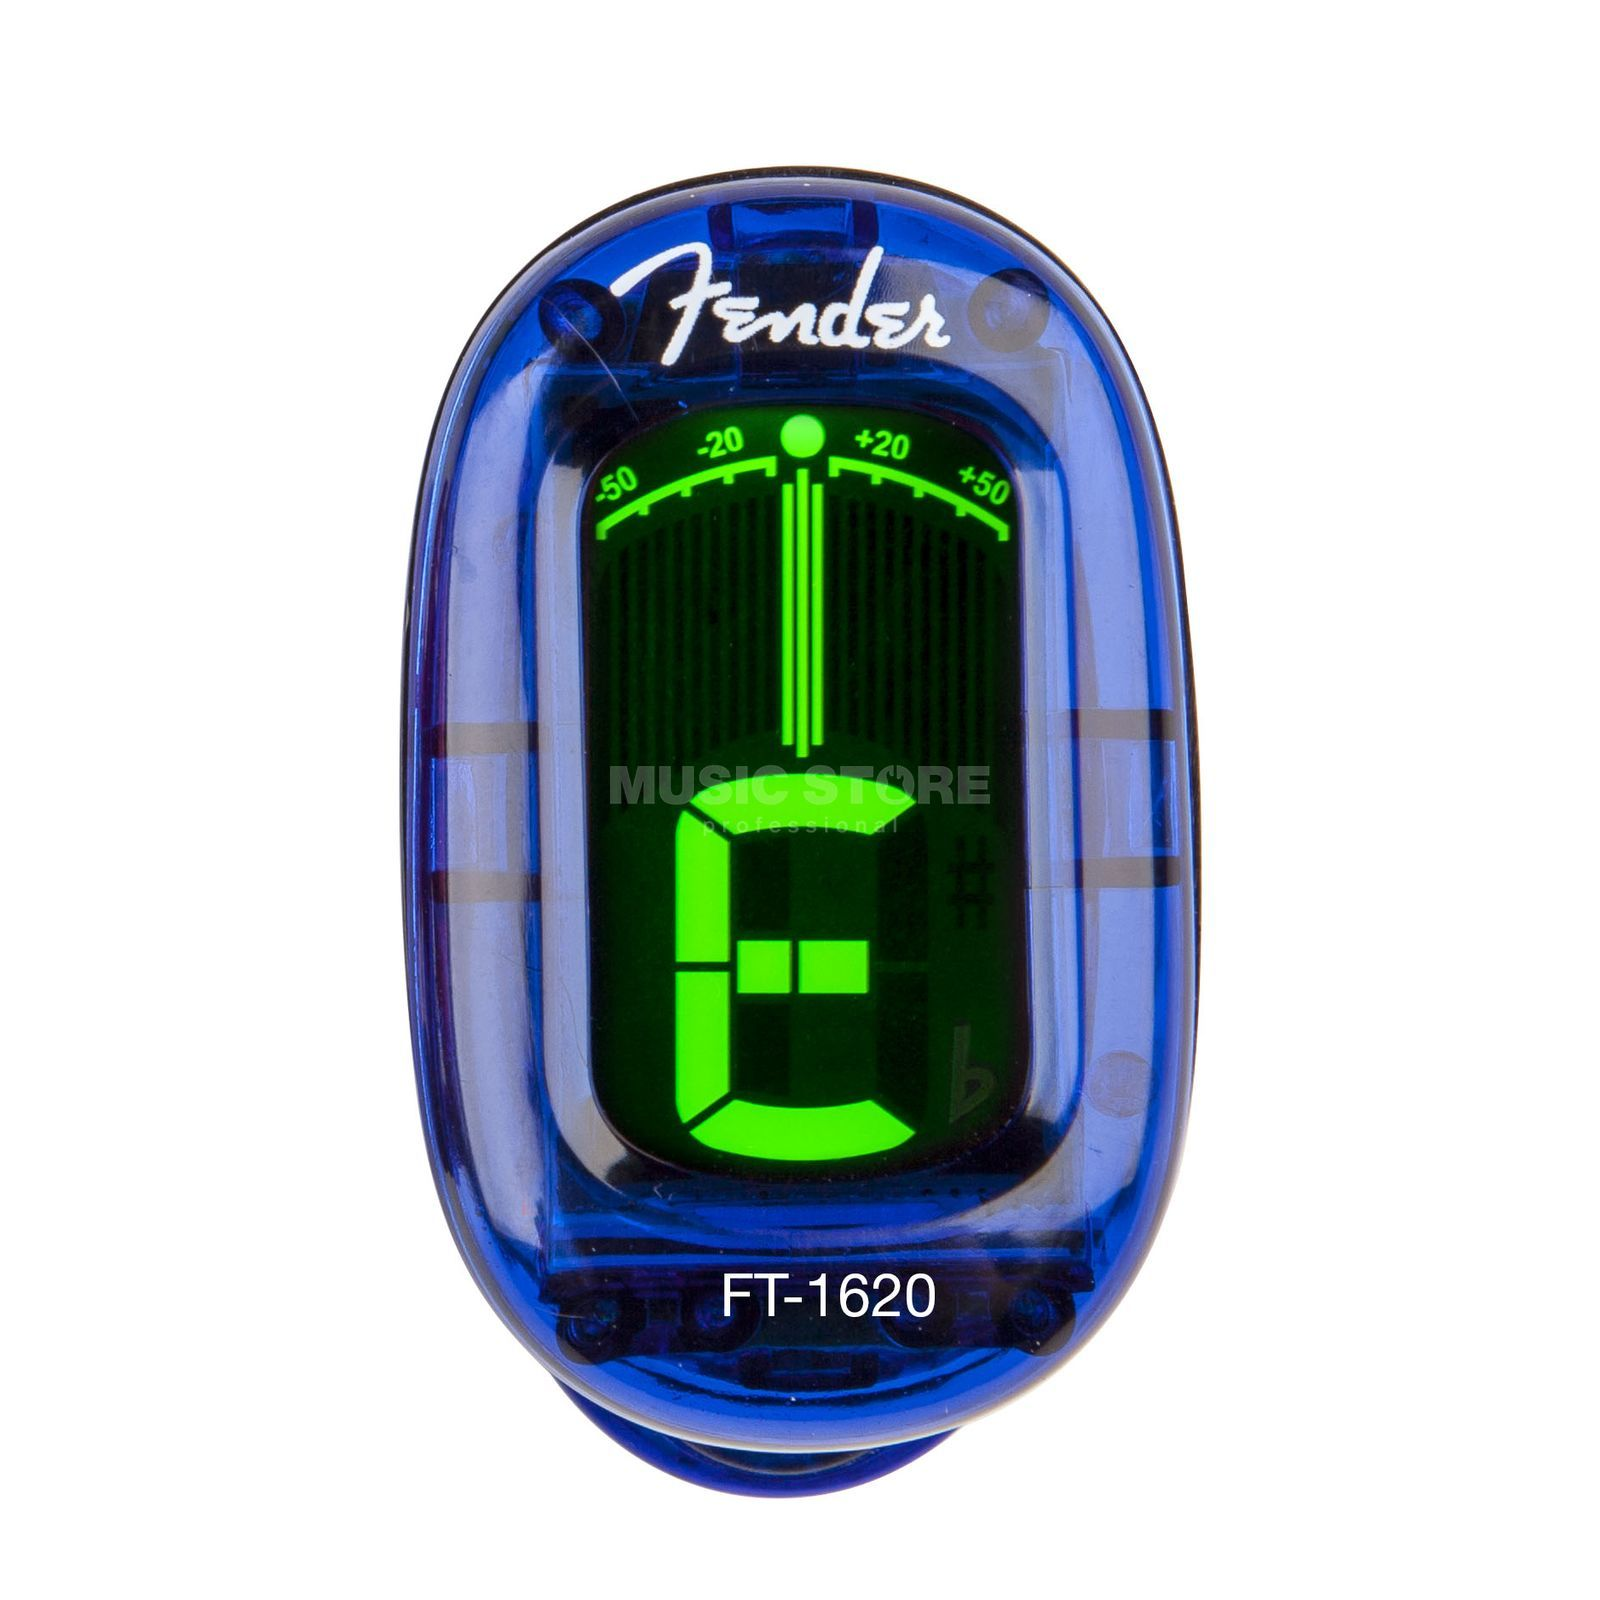 Fender FT-1620 Clip-on Tuner LPB California Series Produktbild